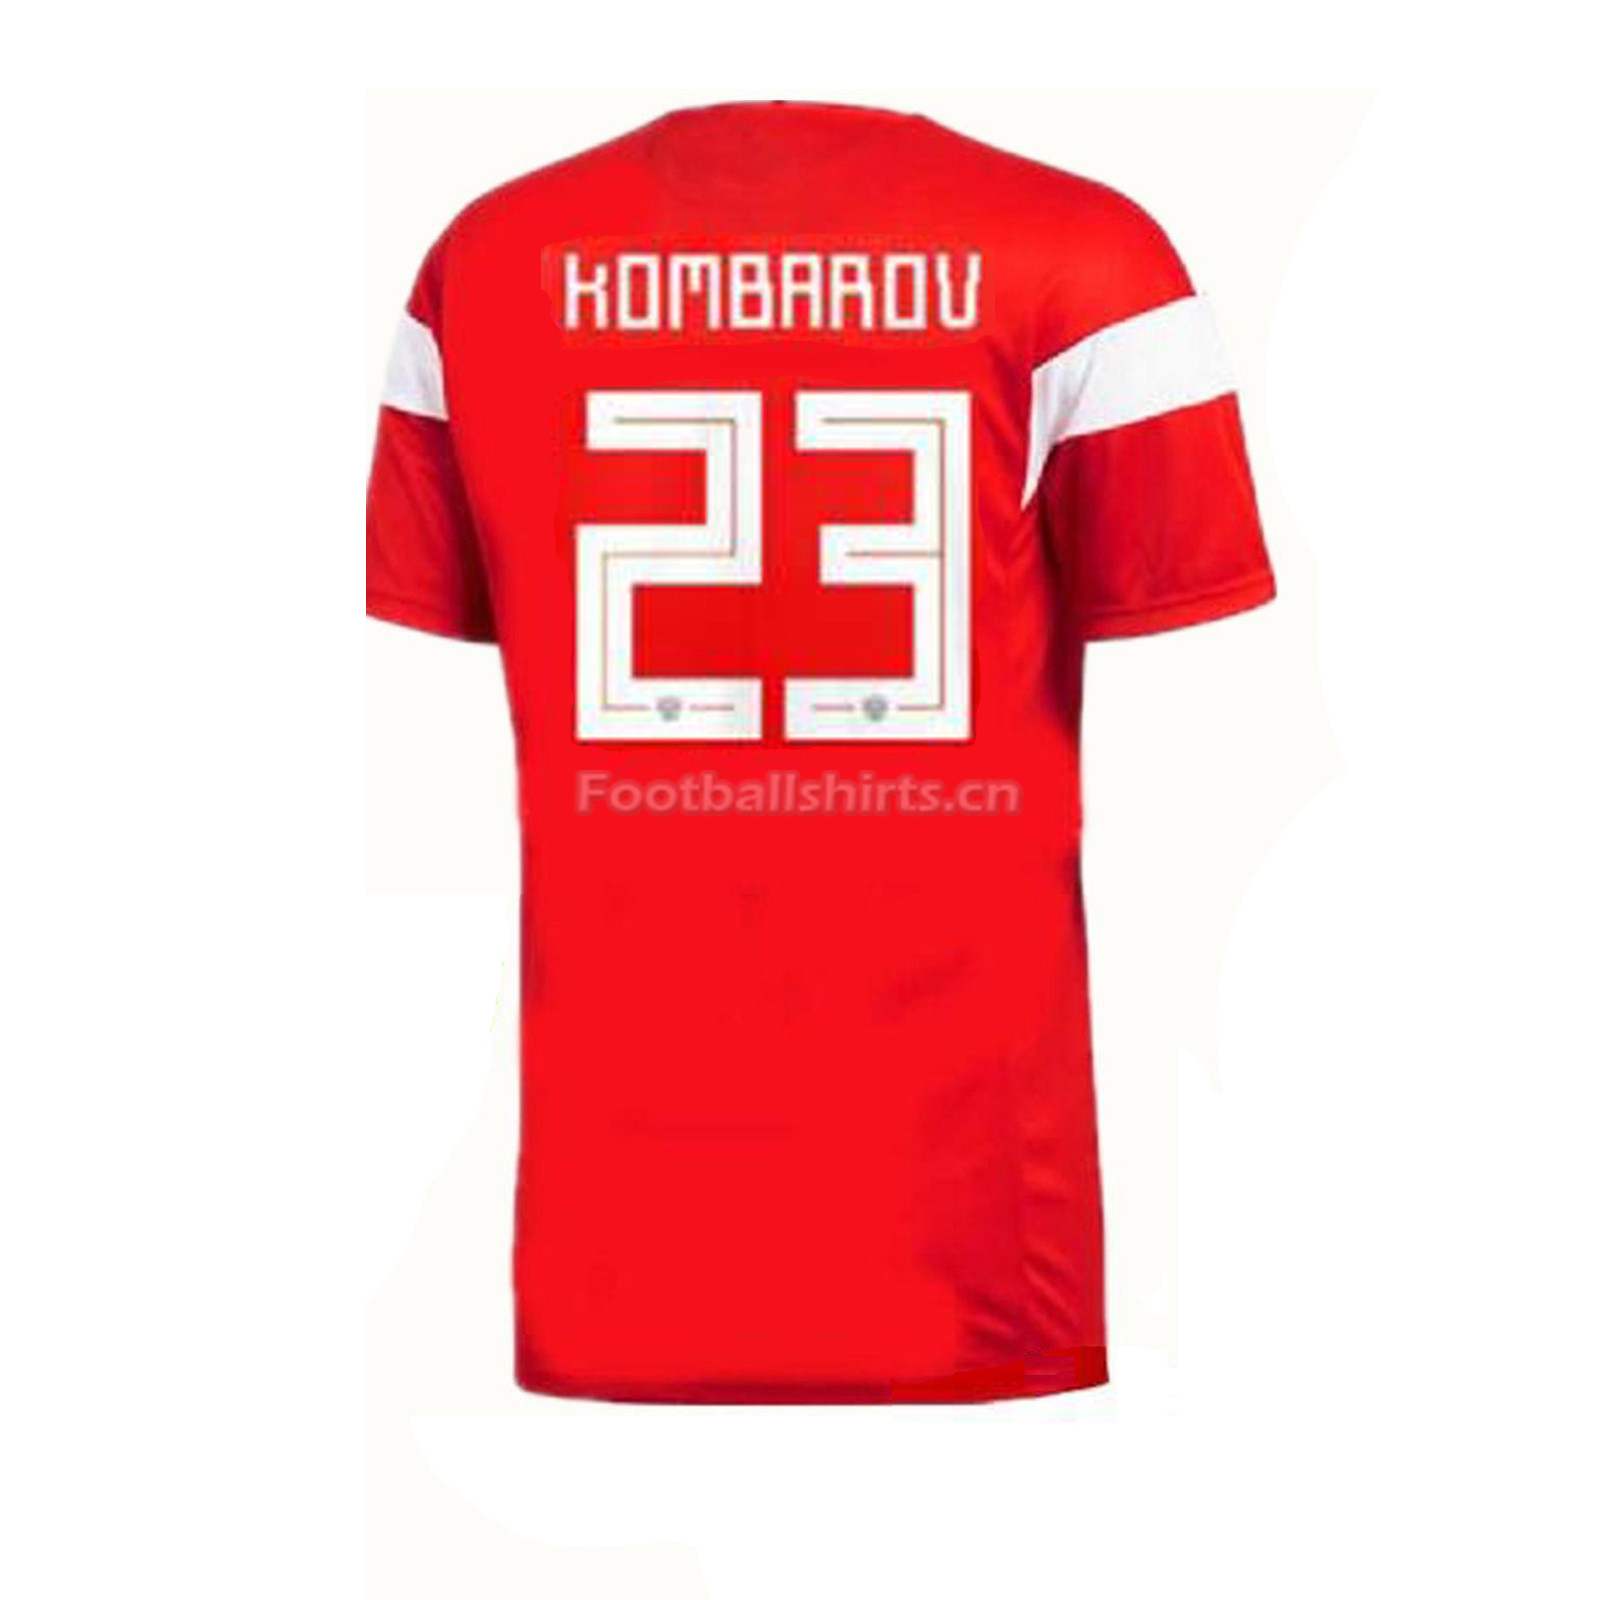 Russia 2018 World Cup Home Dmitriy Kombarov Soccer Jersey